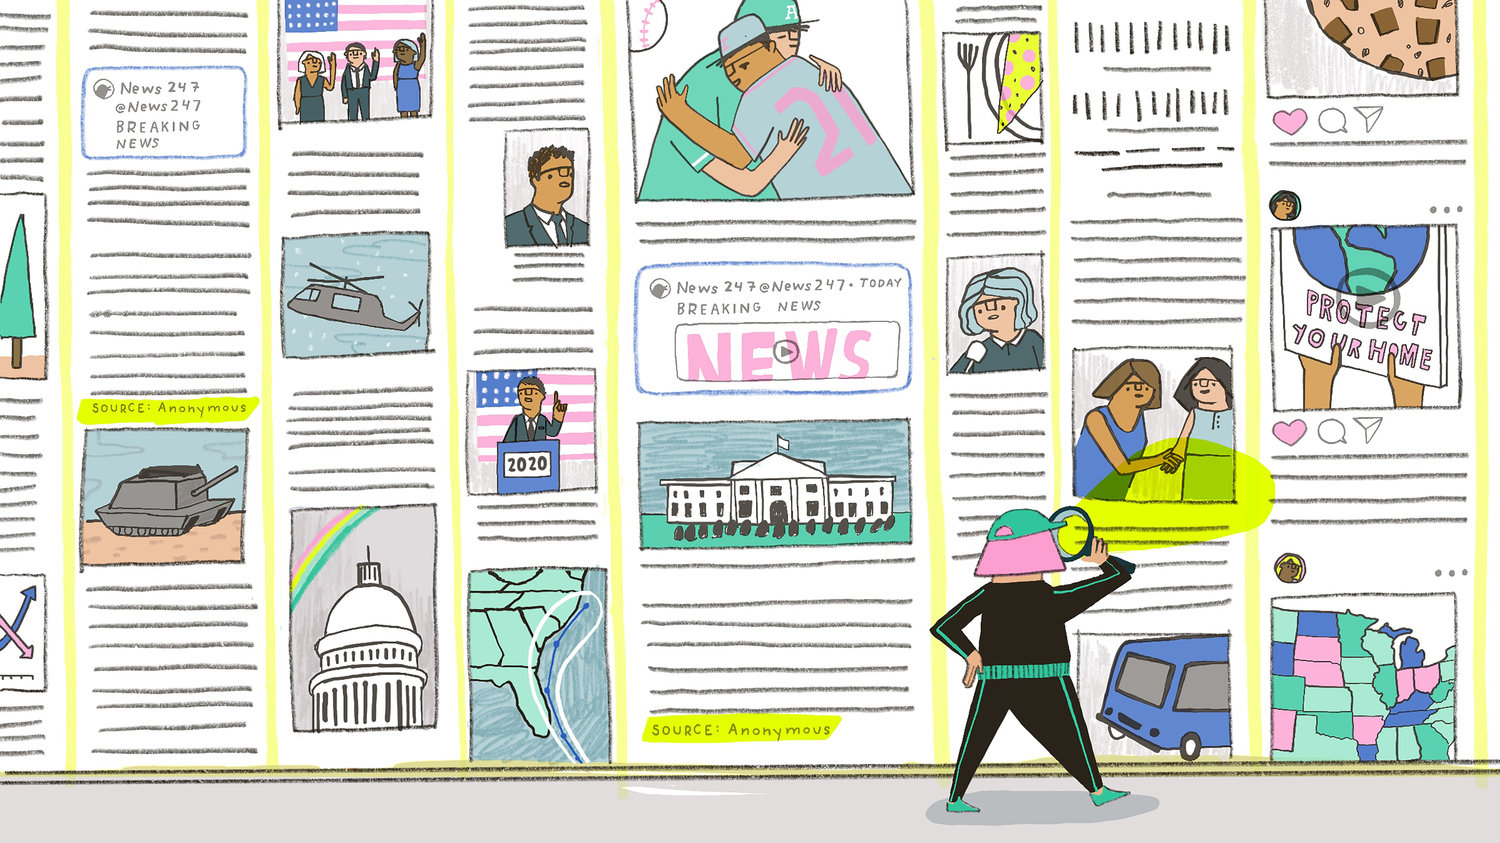 Fake News: How To Spot Misinformation